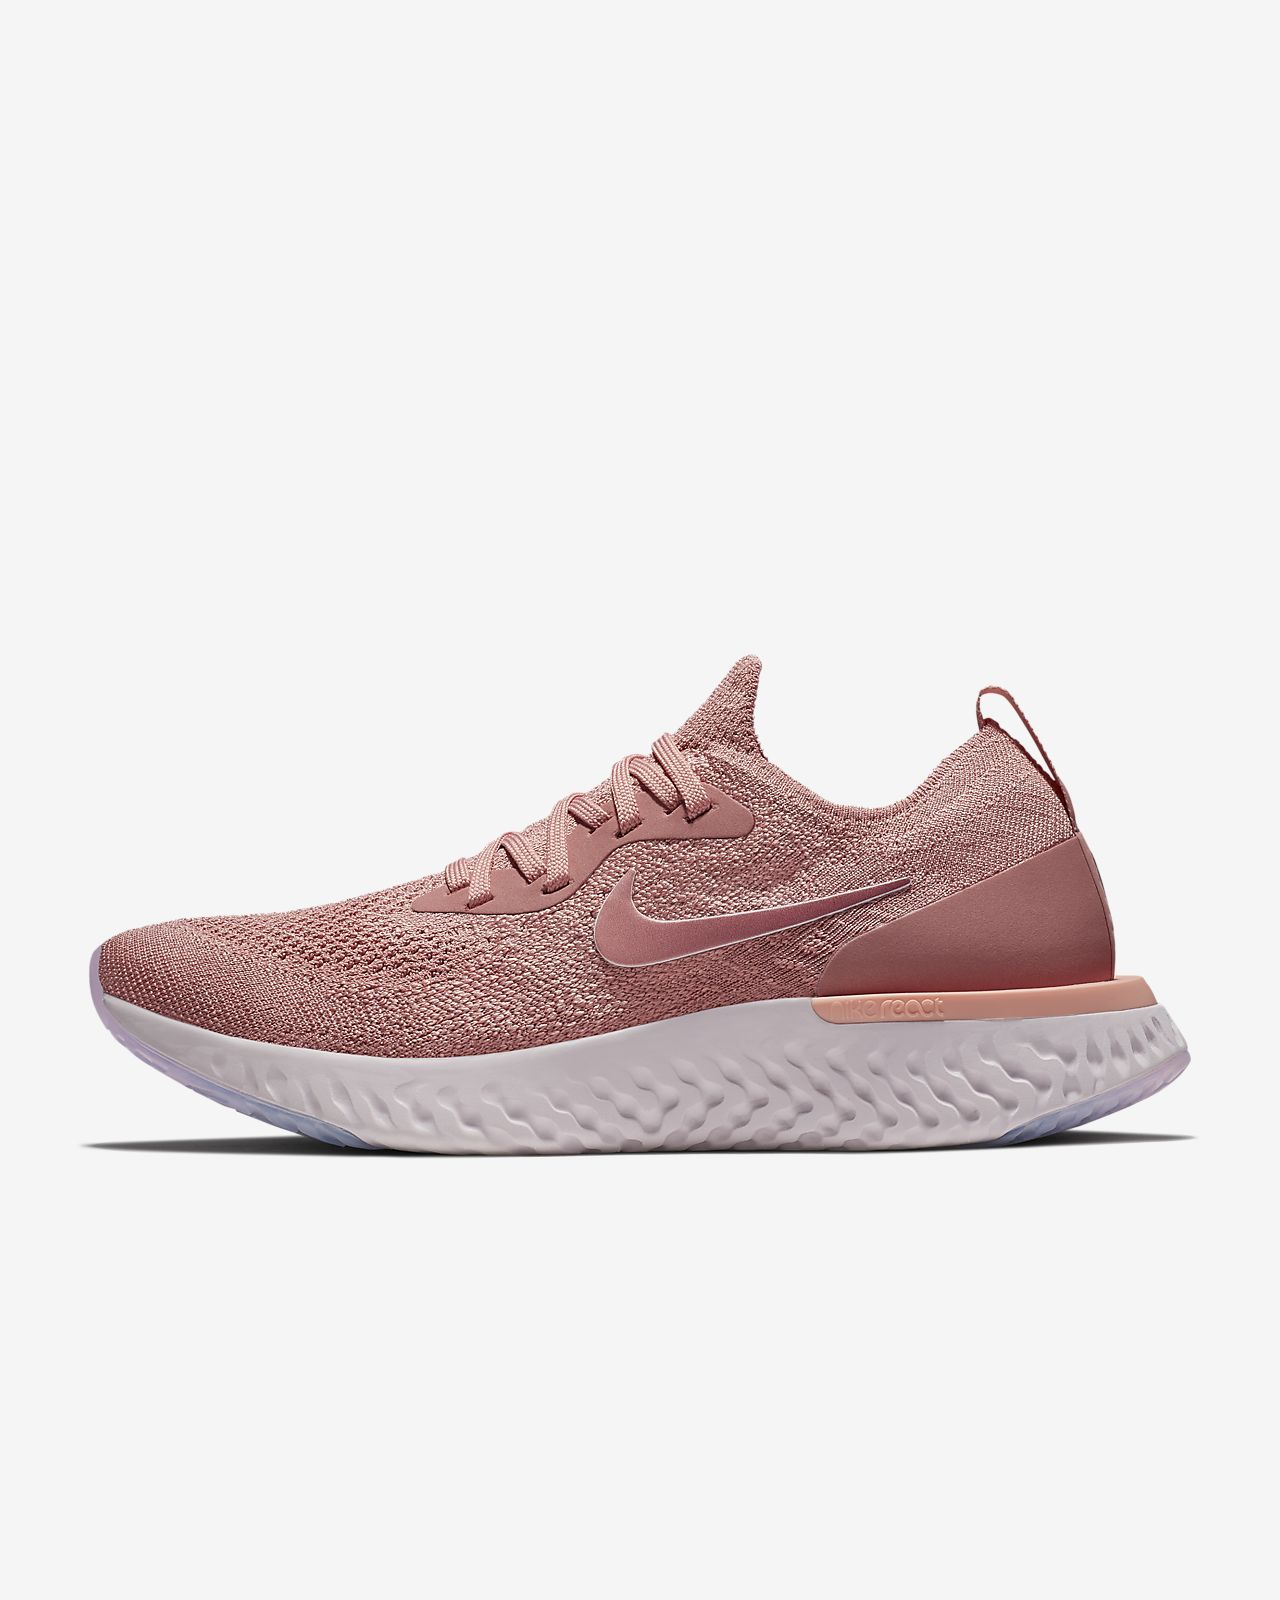 6a2fefc2d548 Nike Epic React Flyknit 1 Women s Running Shoe. Nike.com MY